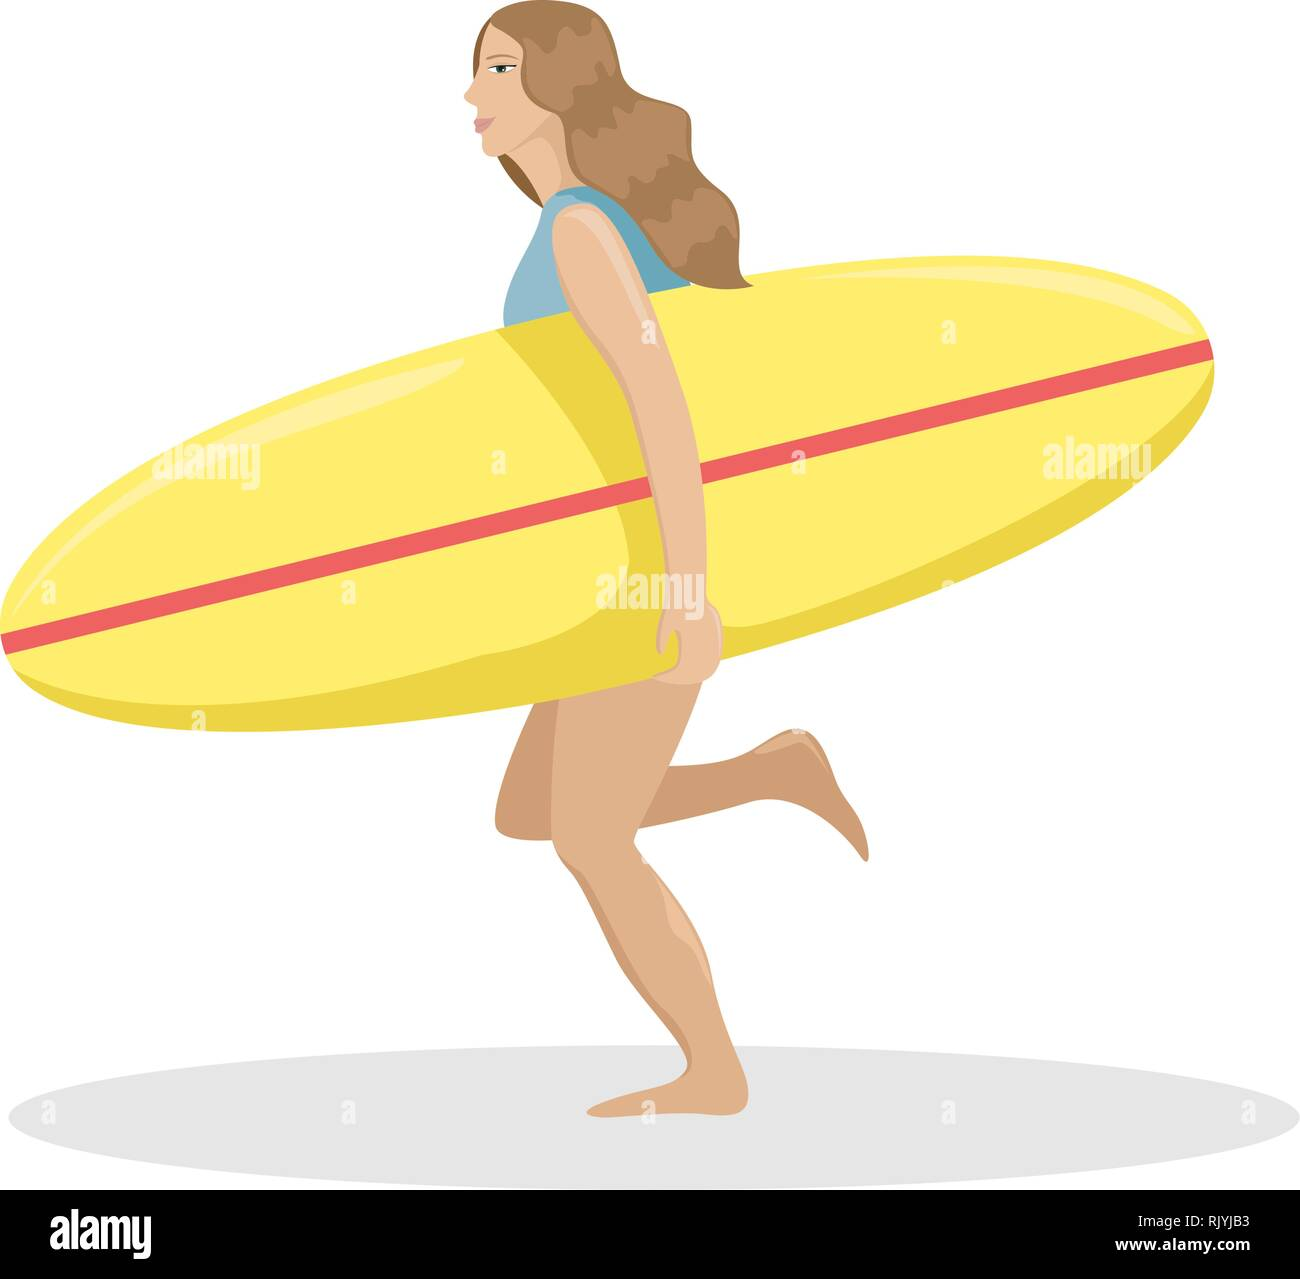 Girl on the beach in a swimsuit running with a surf in her hands. Flat vector illustration. - Stock Image